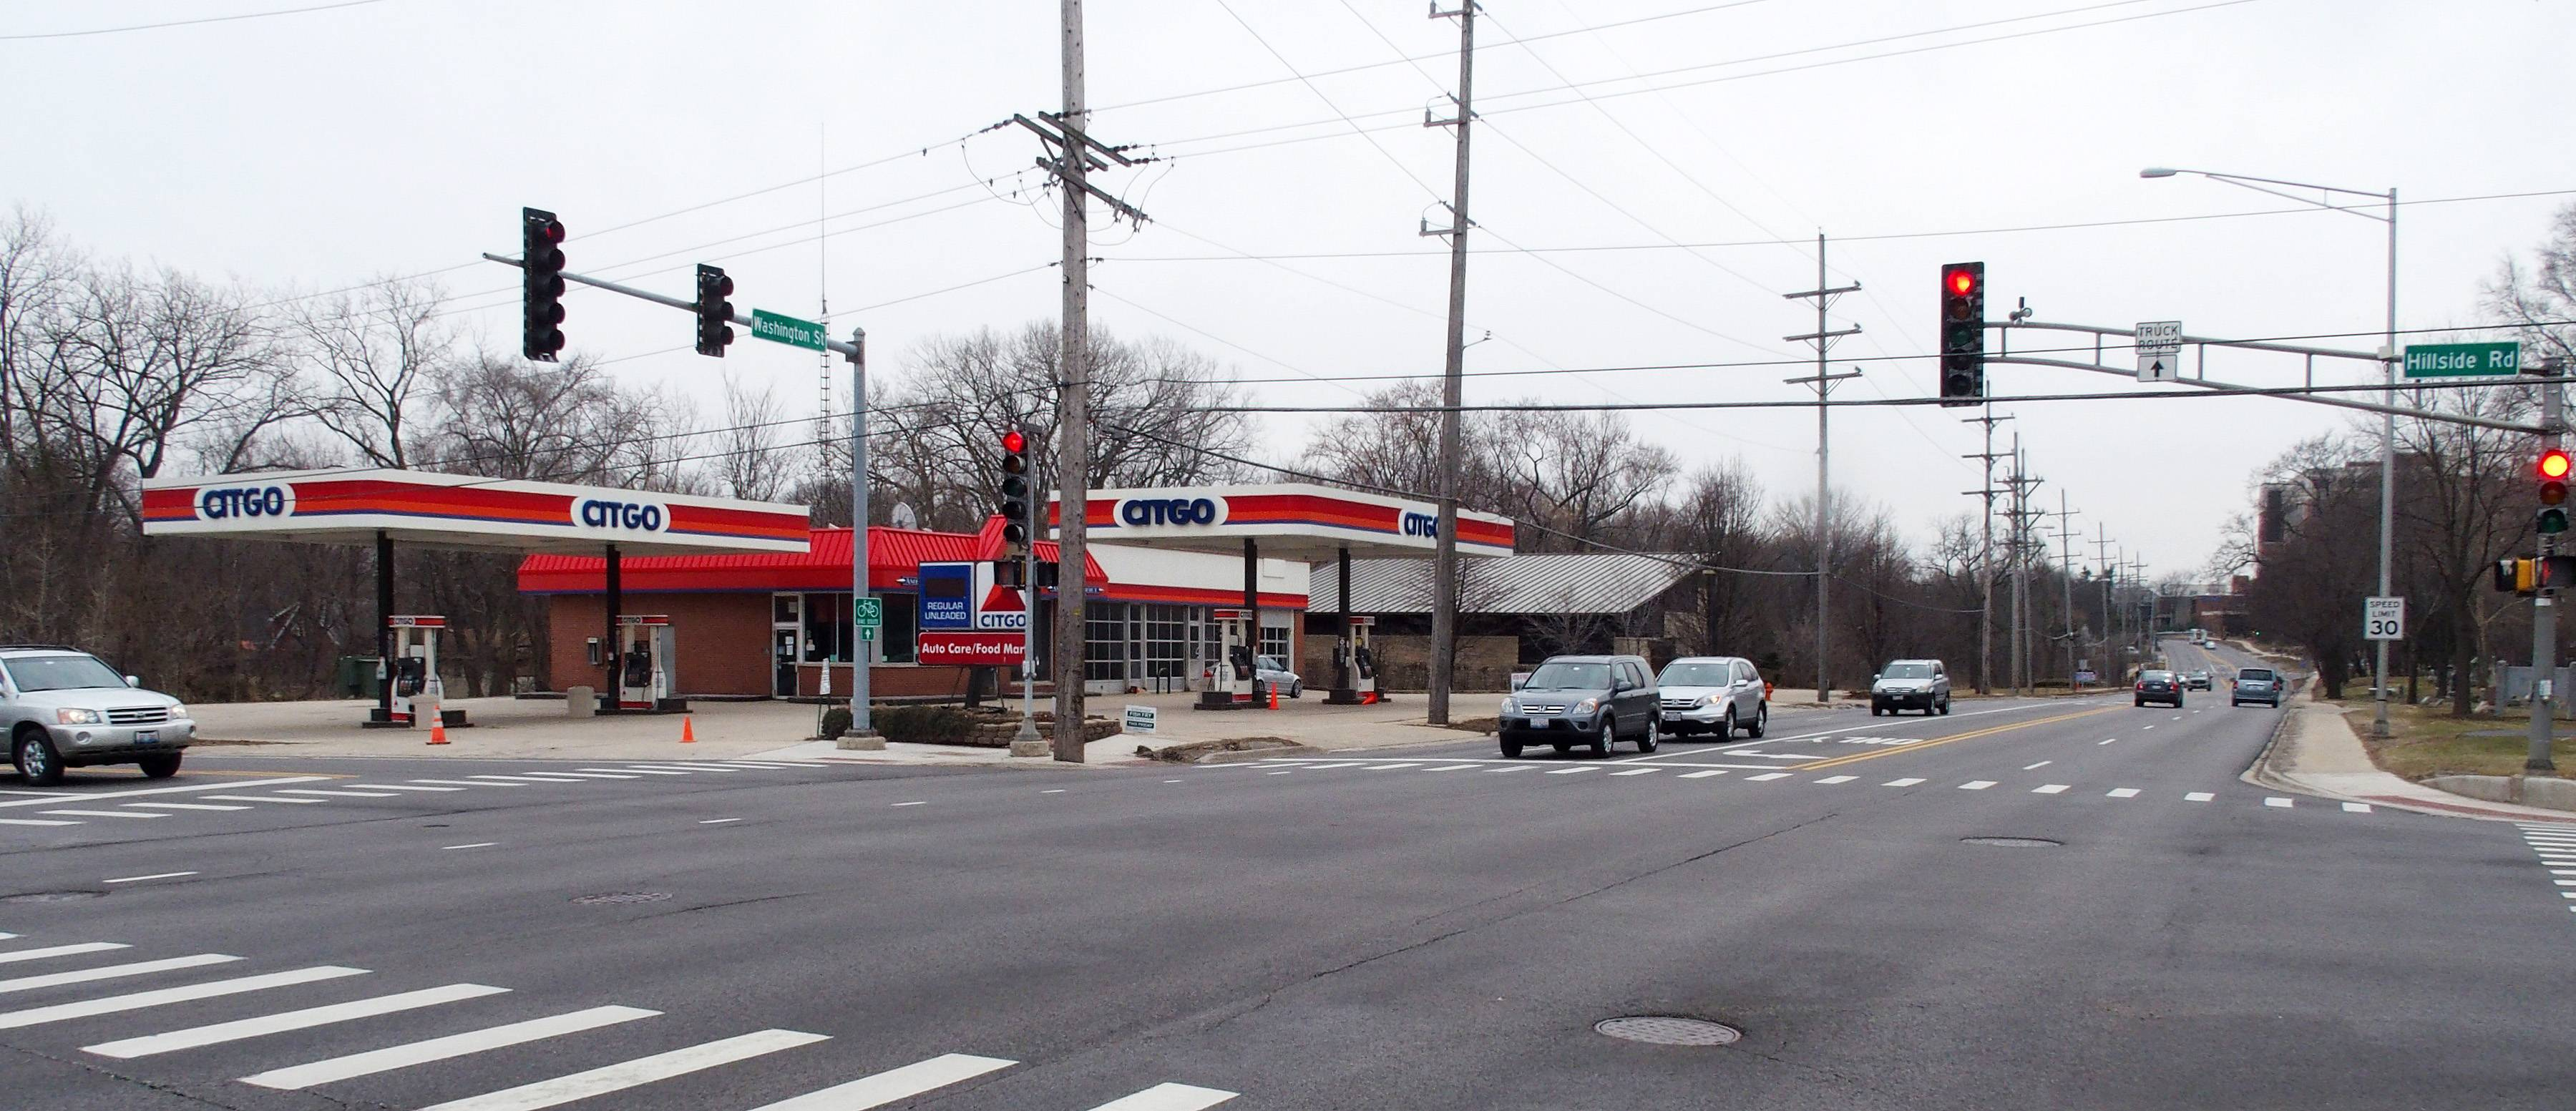 Naperville City Council members cleared the way for Dunkin' Donuts/Baskin Robbins at the southeast corner of Hillside Road and Washington Street in place of the gas station.